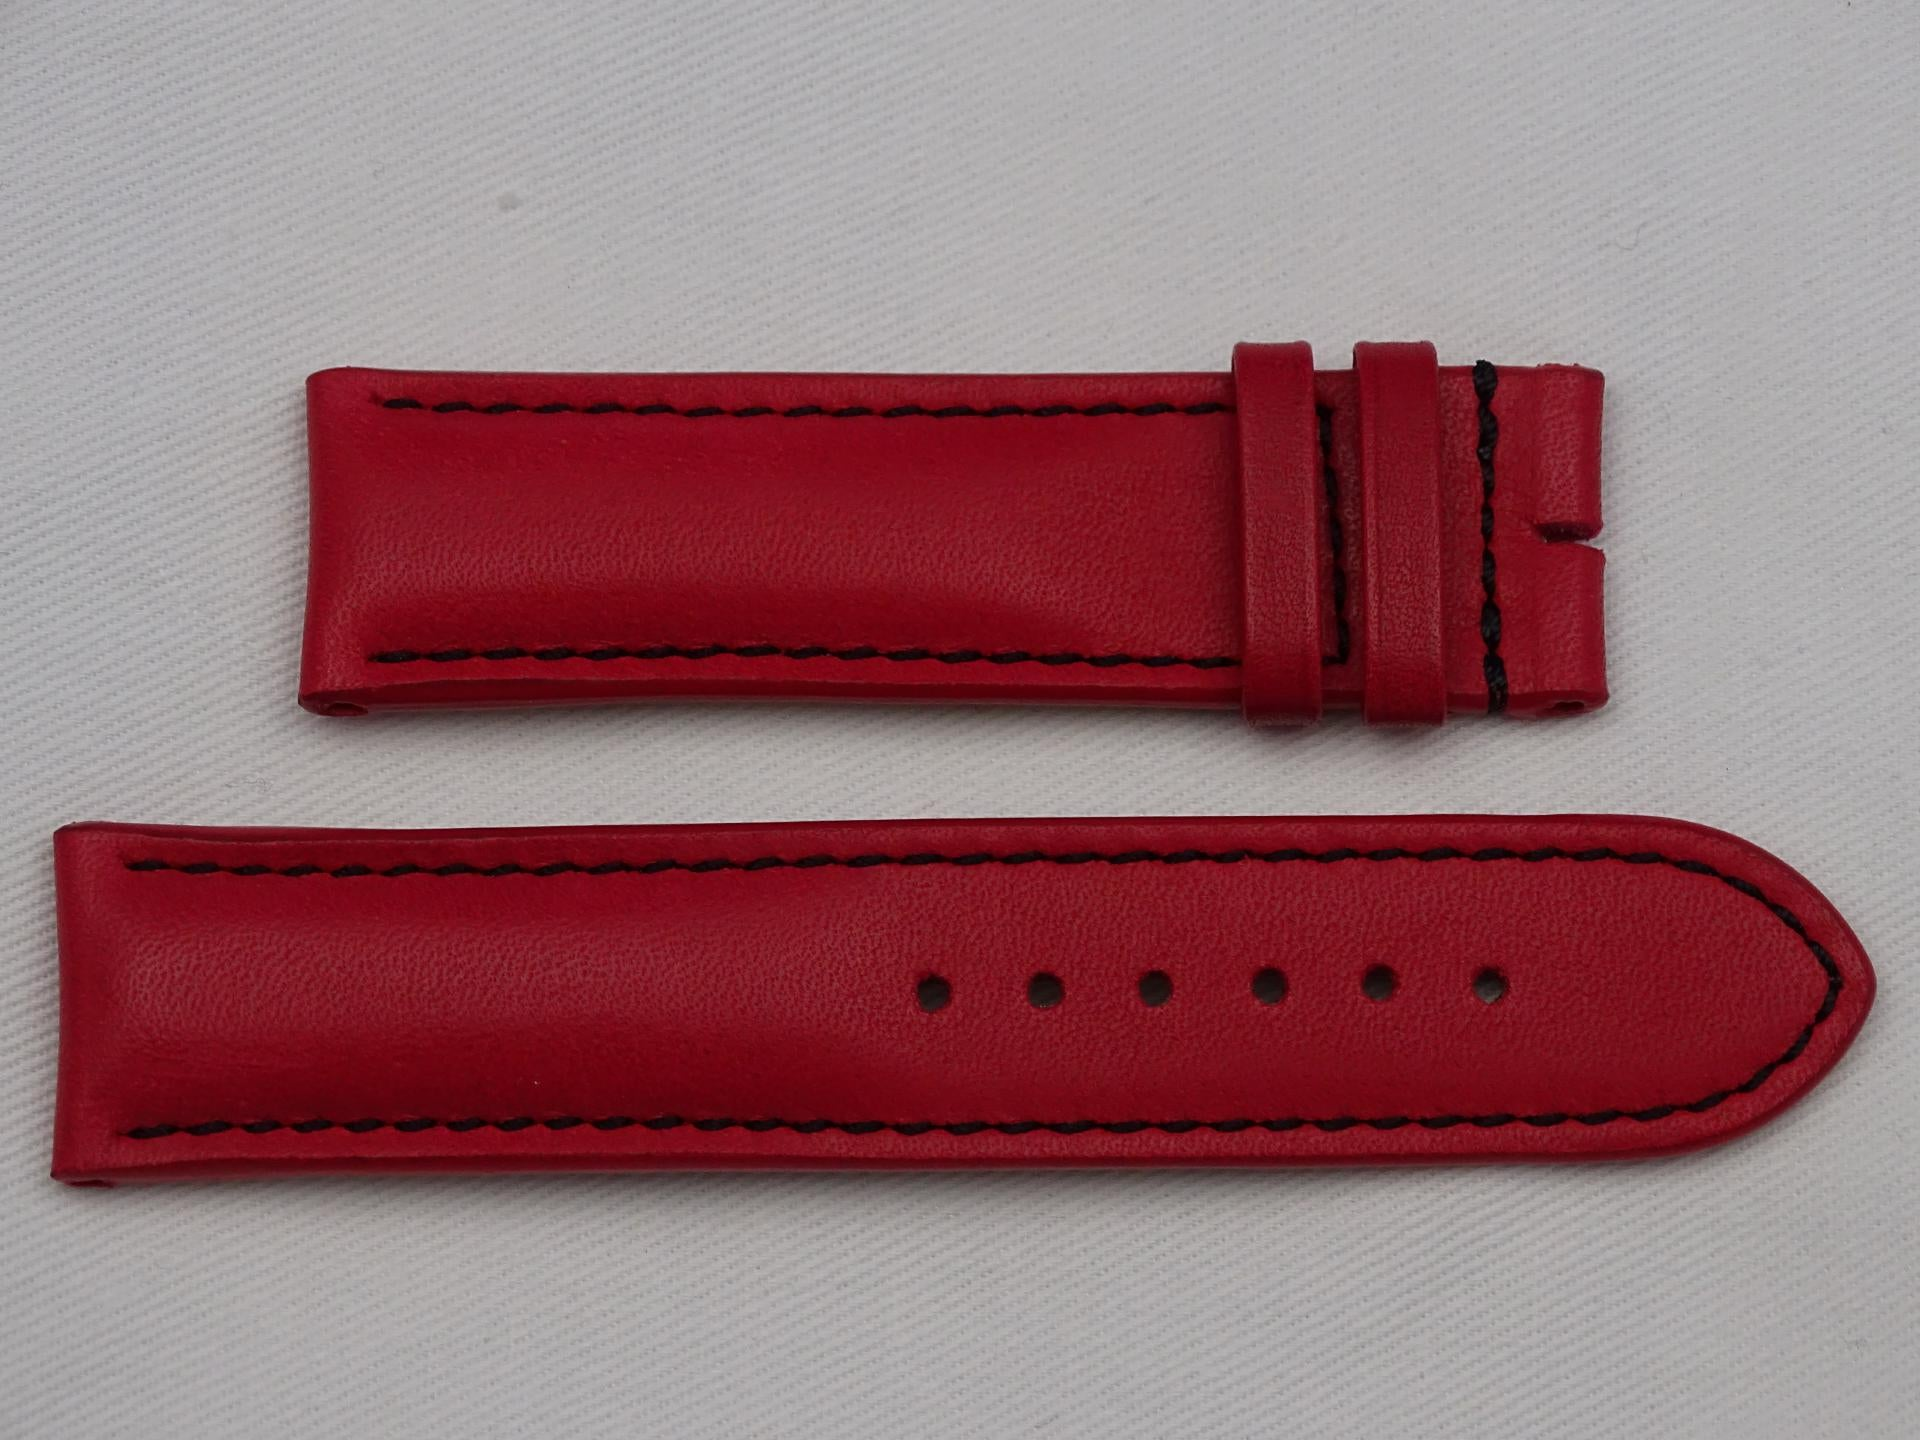 Leather Strap red with black stitching